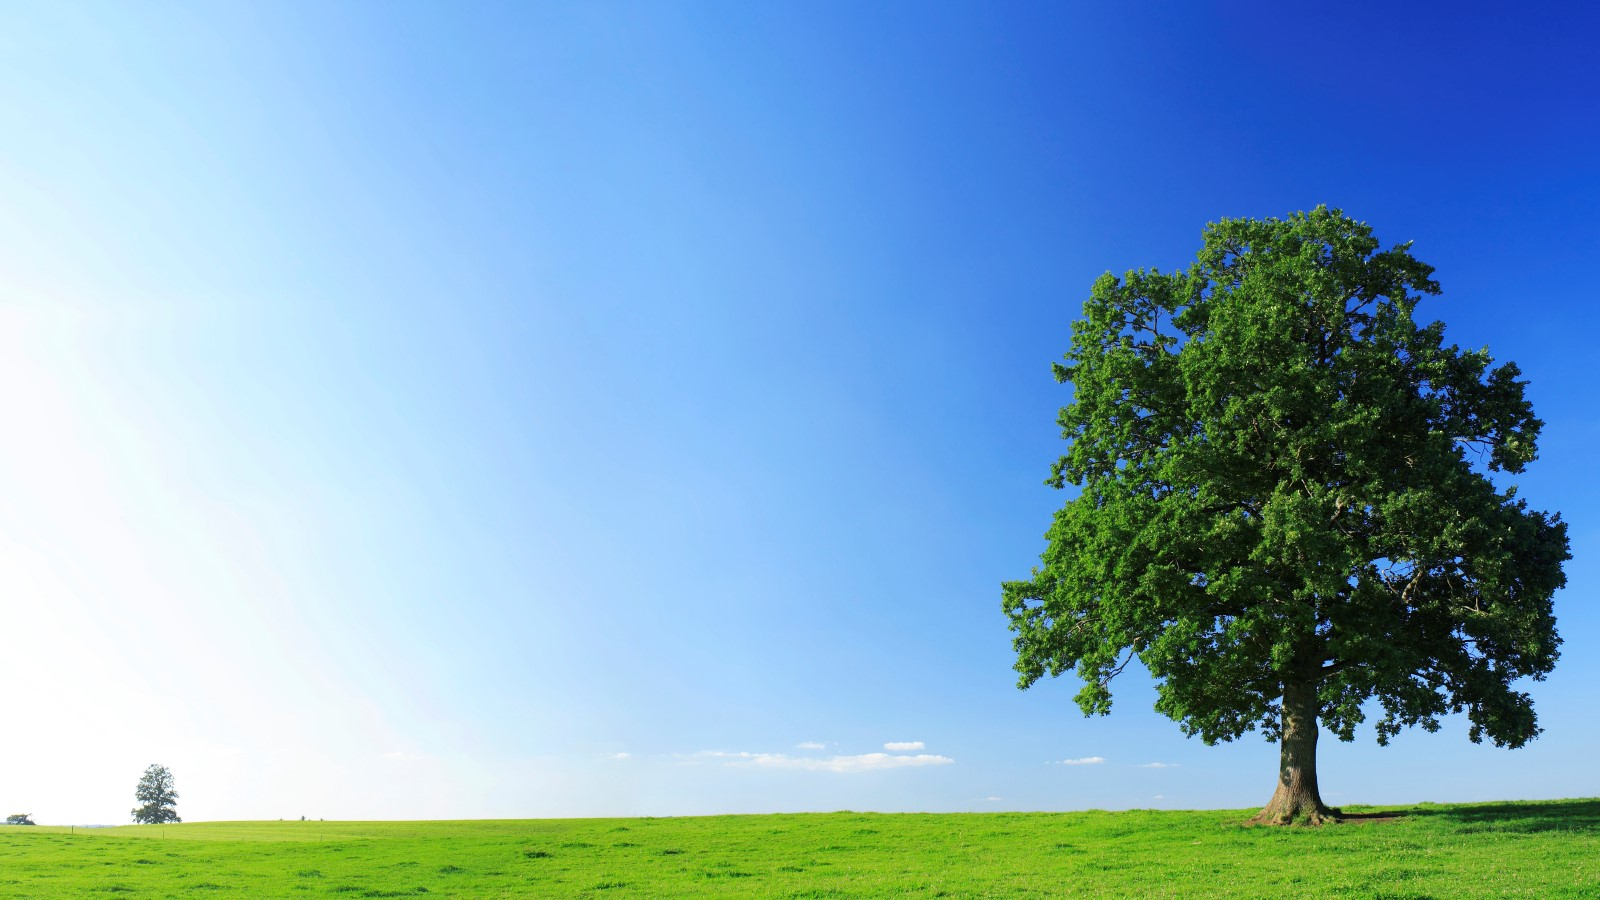 Tree, grass and big blue sky